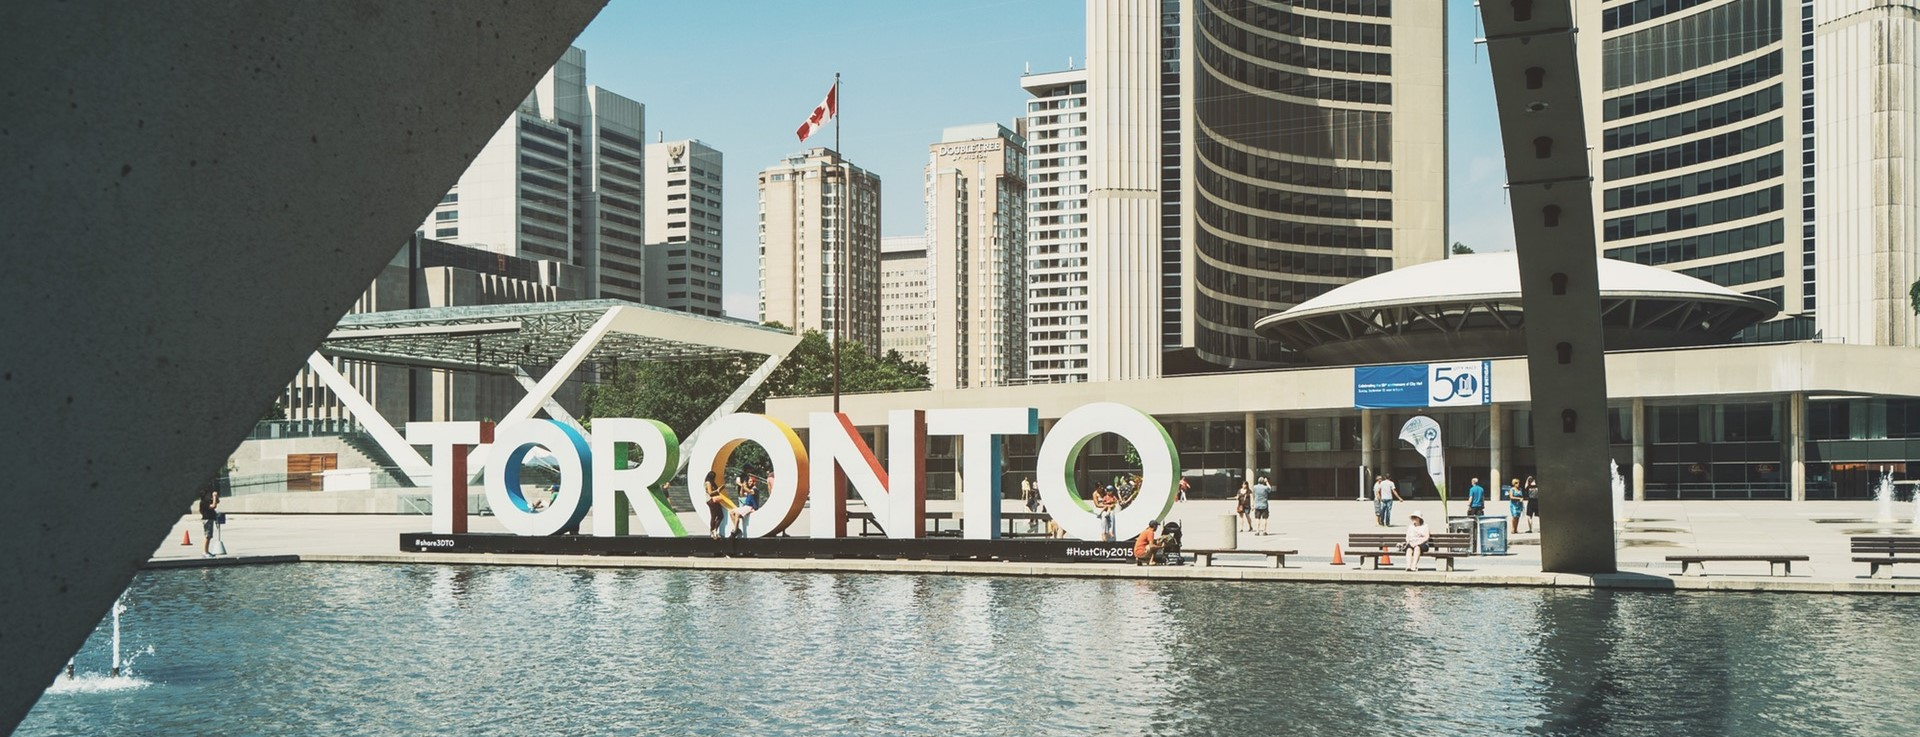 Toronto Le-Vel Lifestyle Getaway – Discover the city